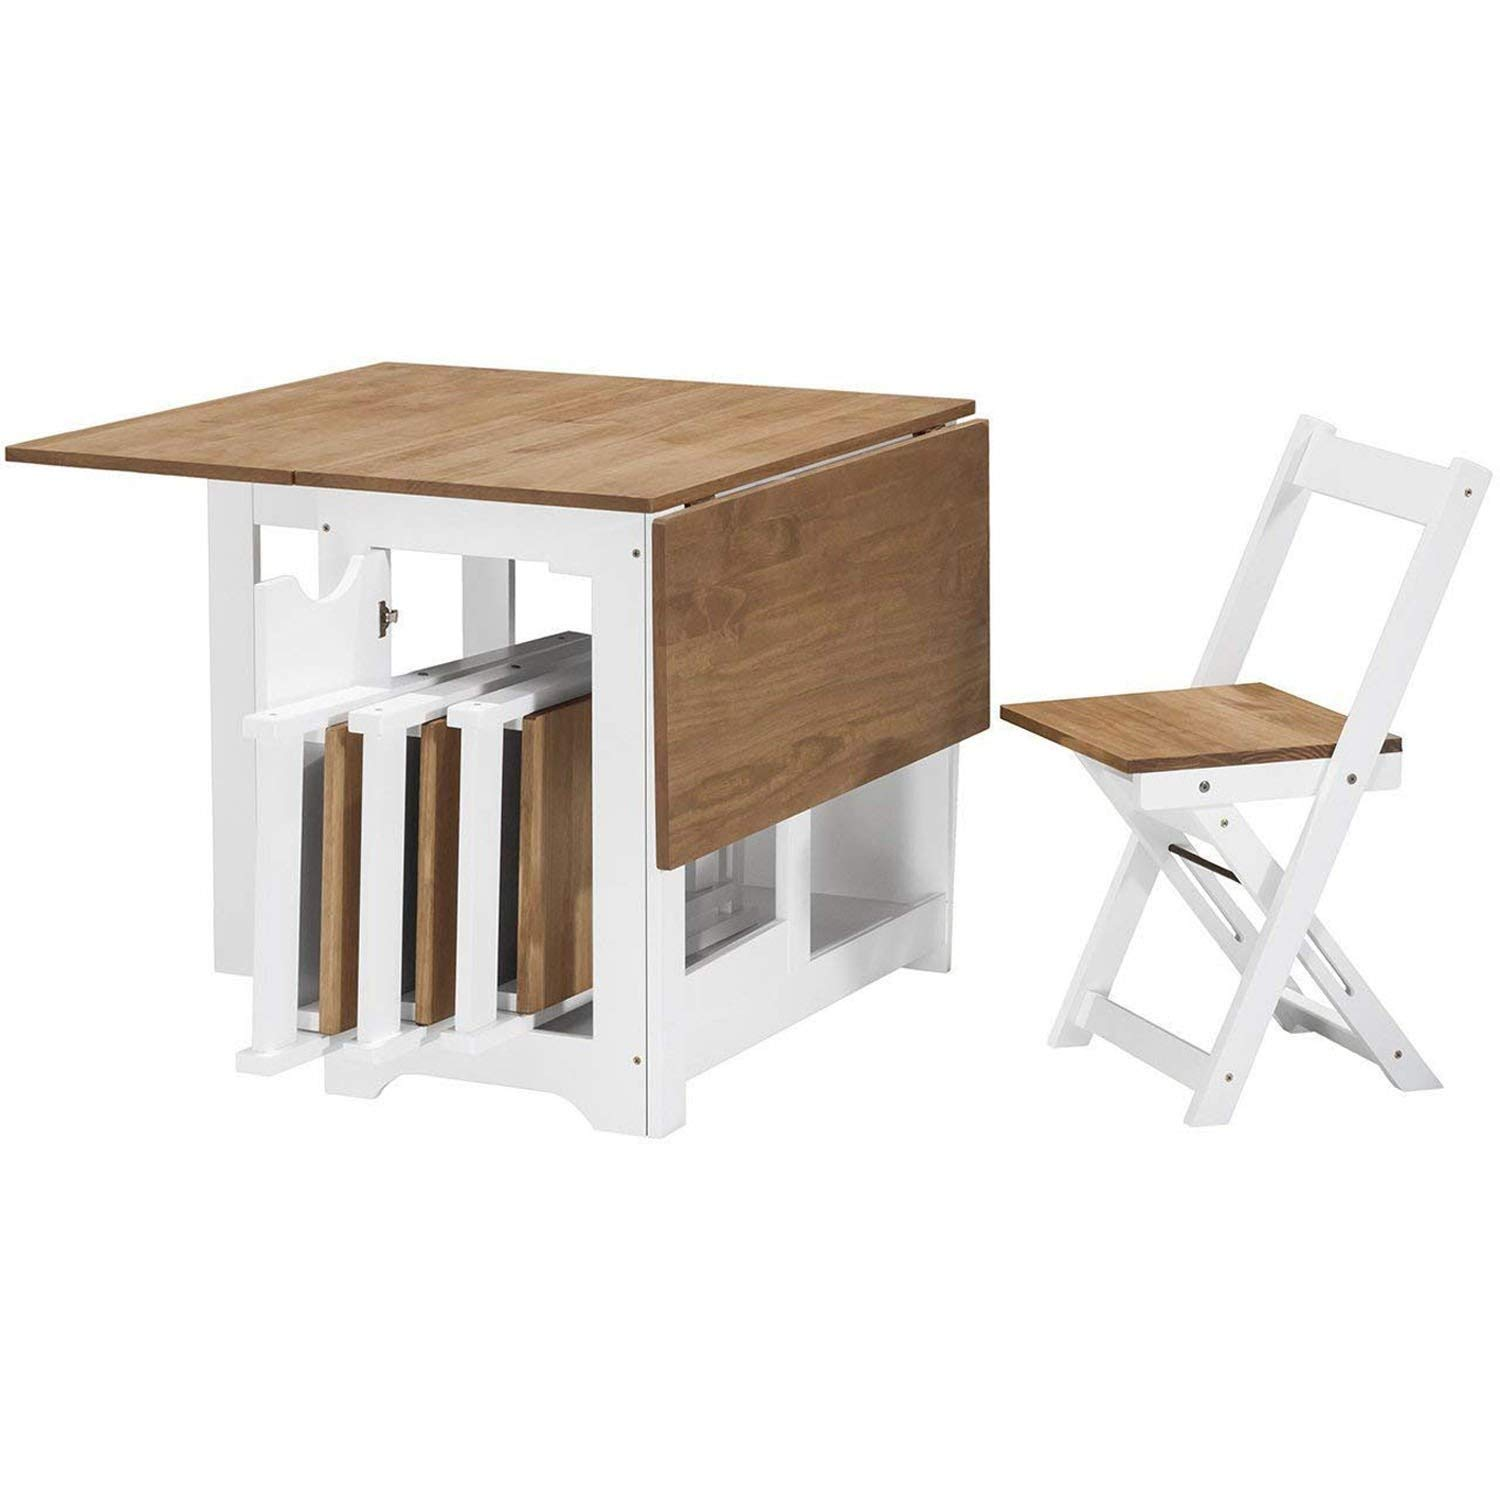 - Table And 4 Chairs Wooden White Folding Dining Set Extending Space